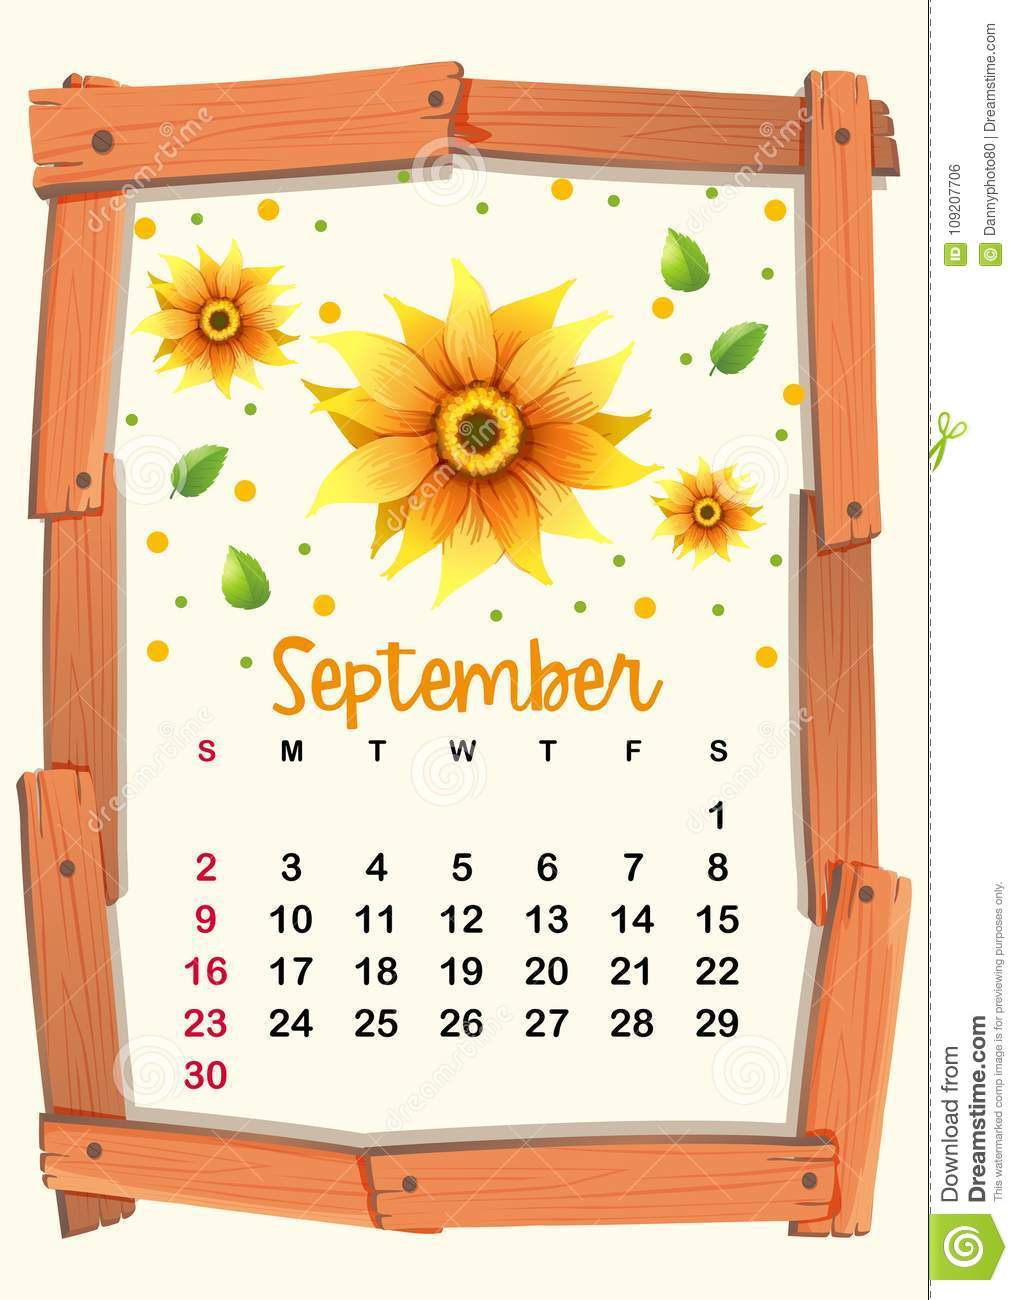 Calendar Template With Sunflower For September Stock Vector pertaining to 2021-2022 Monthly Planner: Sunflowers